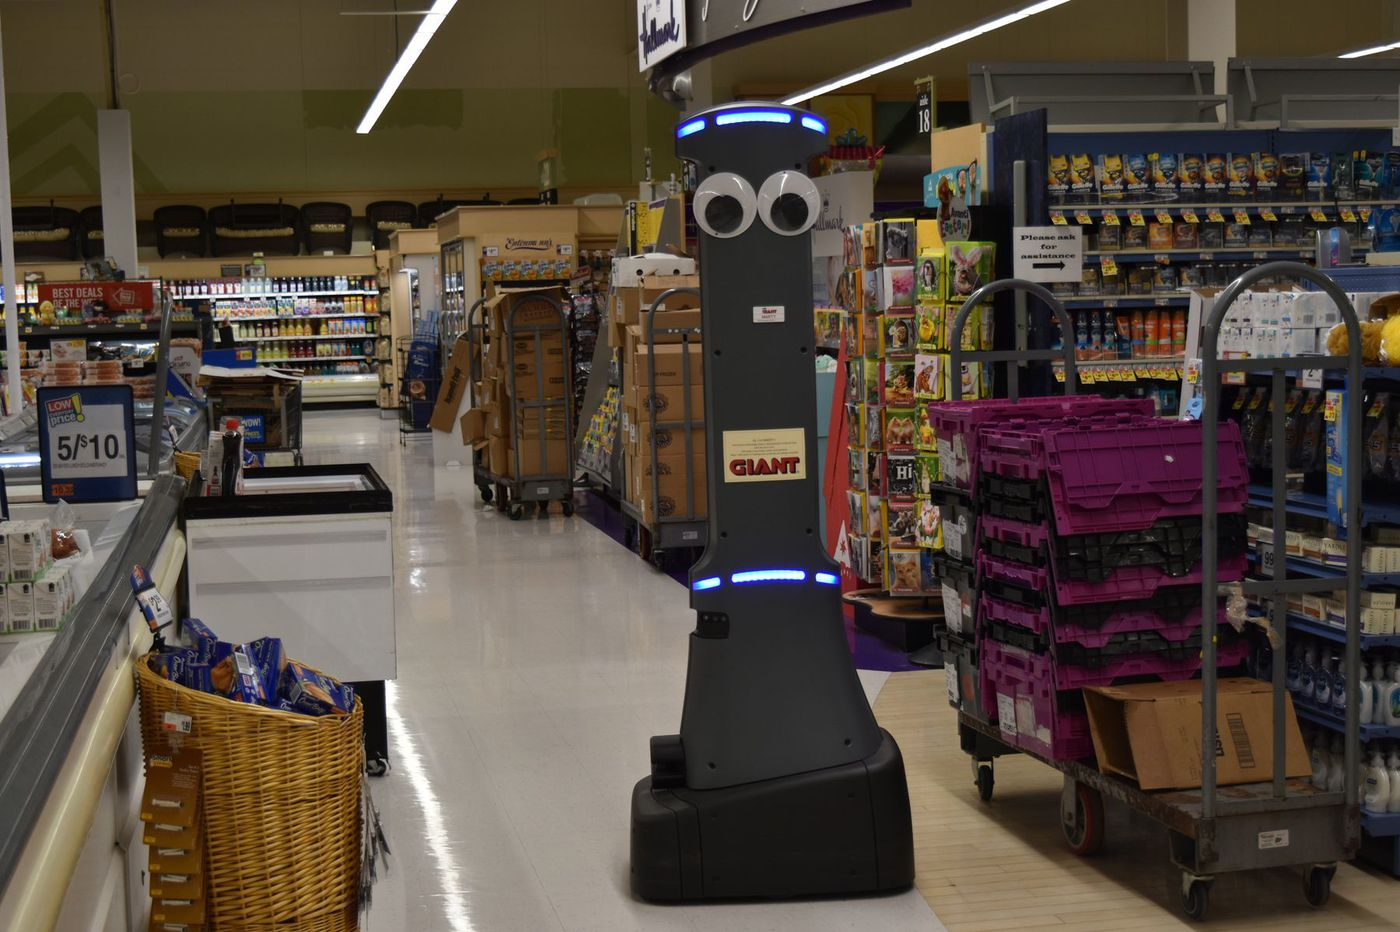 Giant Food Stores will be getting a 6-foot-5, googly eyed